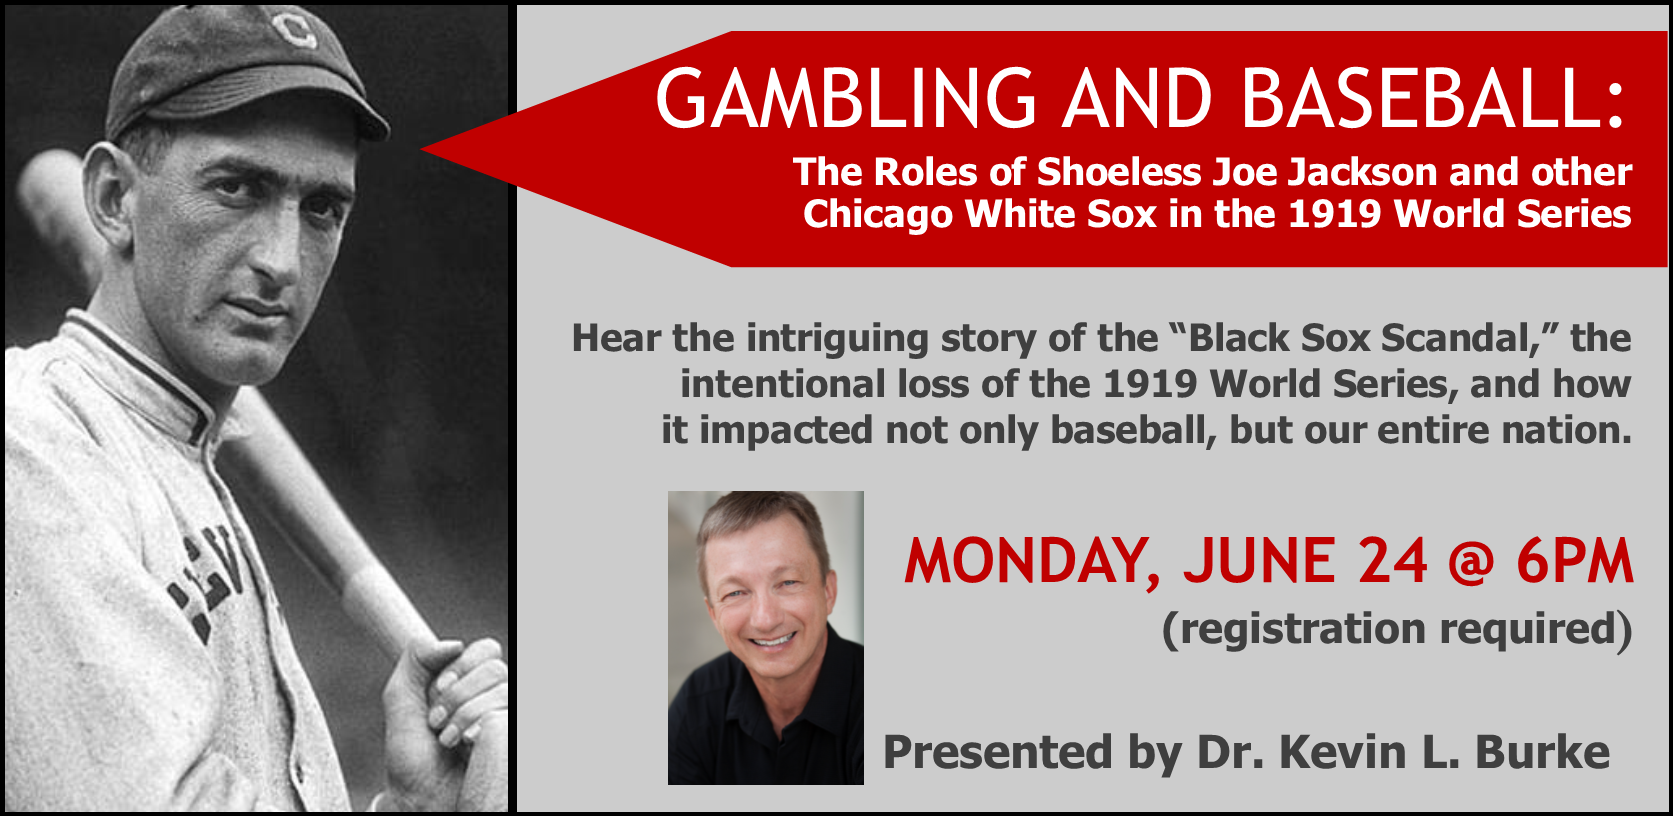 Gambling and Baseball: The Roles of Shoeless Joe Jackson and other Chicago White Sox in the 1919 World Series Scandal